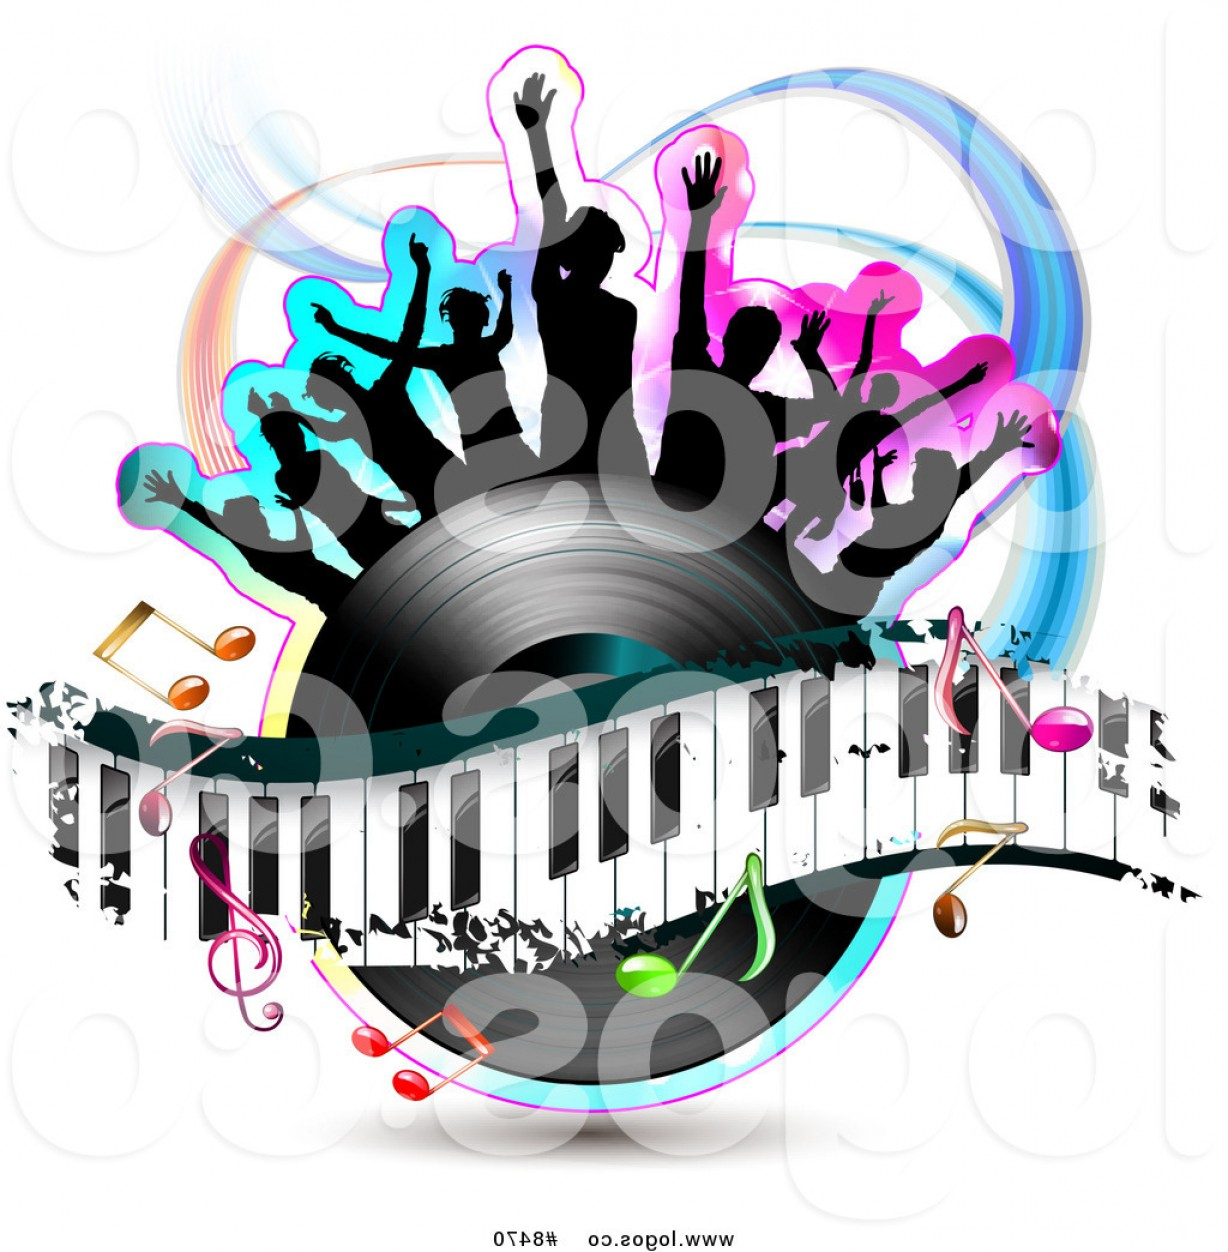 Dancing Musical Notes Vector: Royalty Free Clip Art Vector Logo Of Silhouetted Dancers On A Vinyl Record With A Keyboard And Music Notes By Merlinul